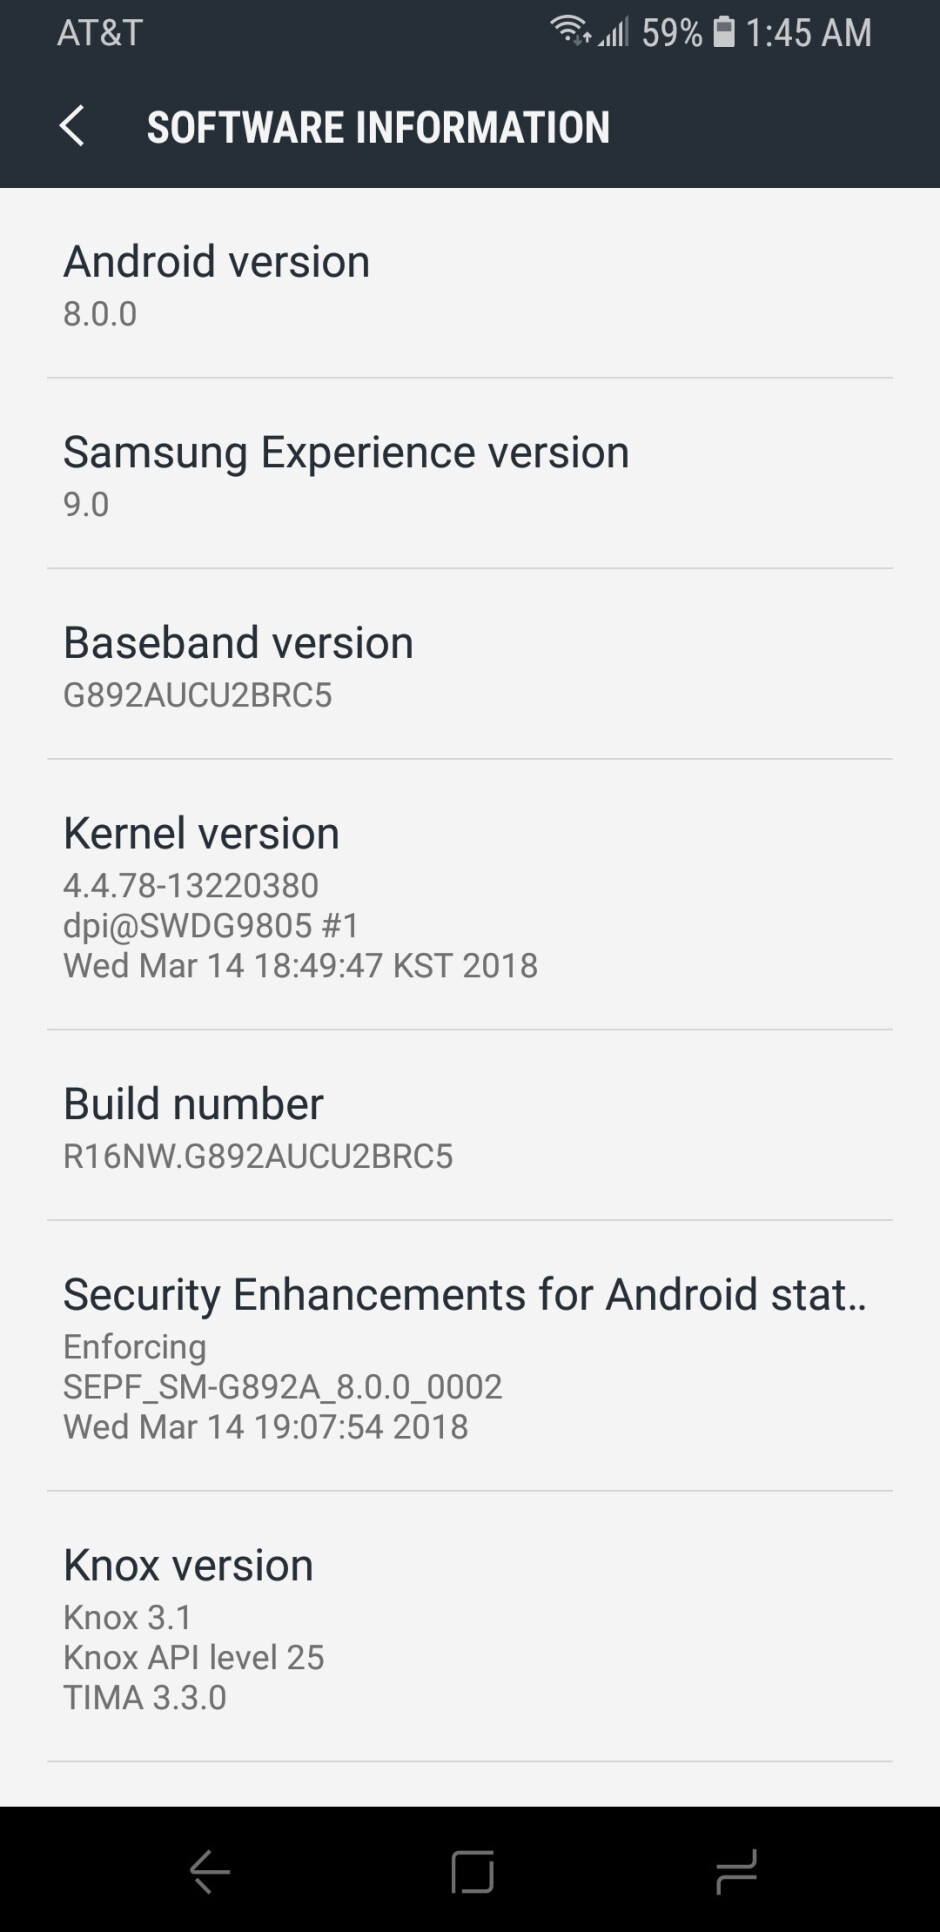 AT&T pushes out Android 8.0 Oreo to the Galaxy S8 Active